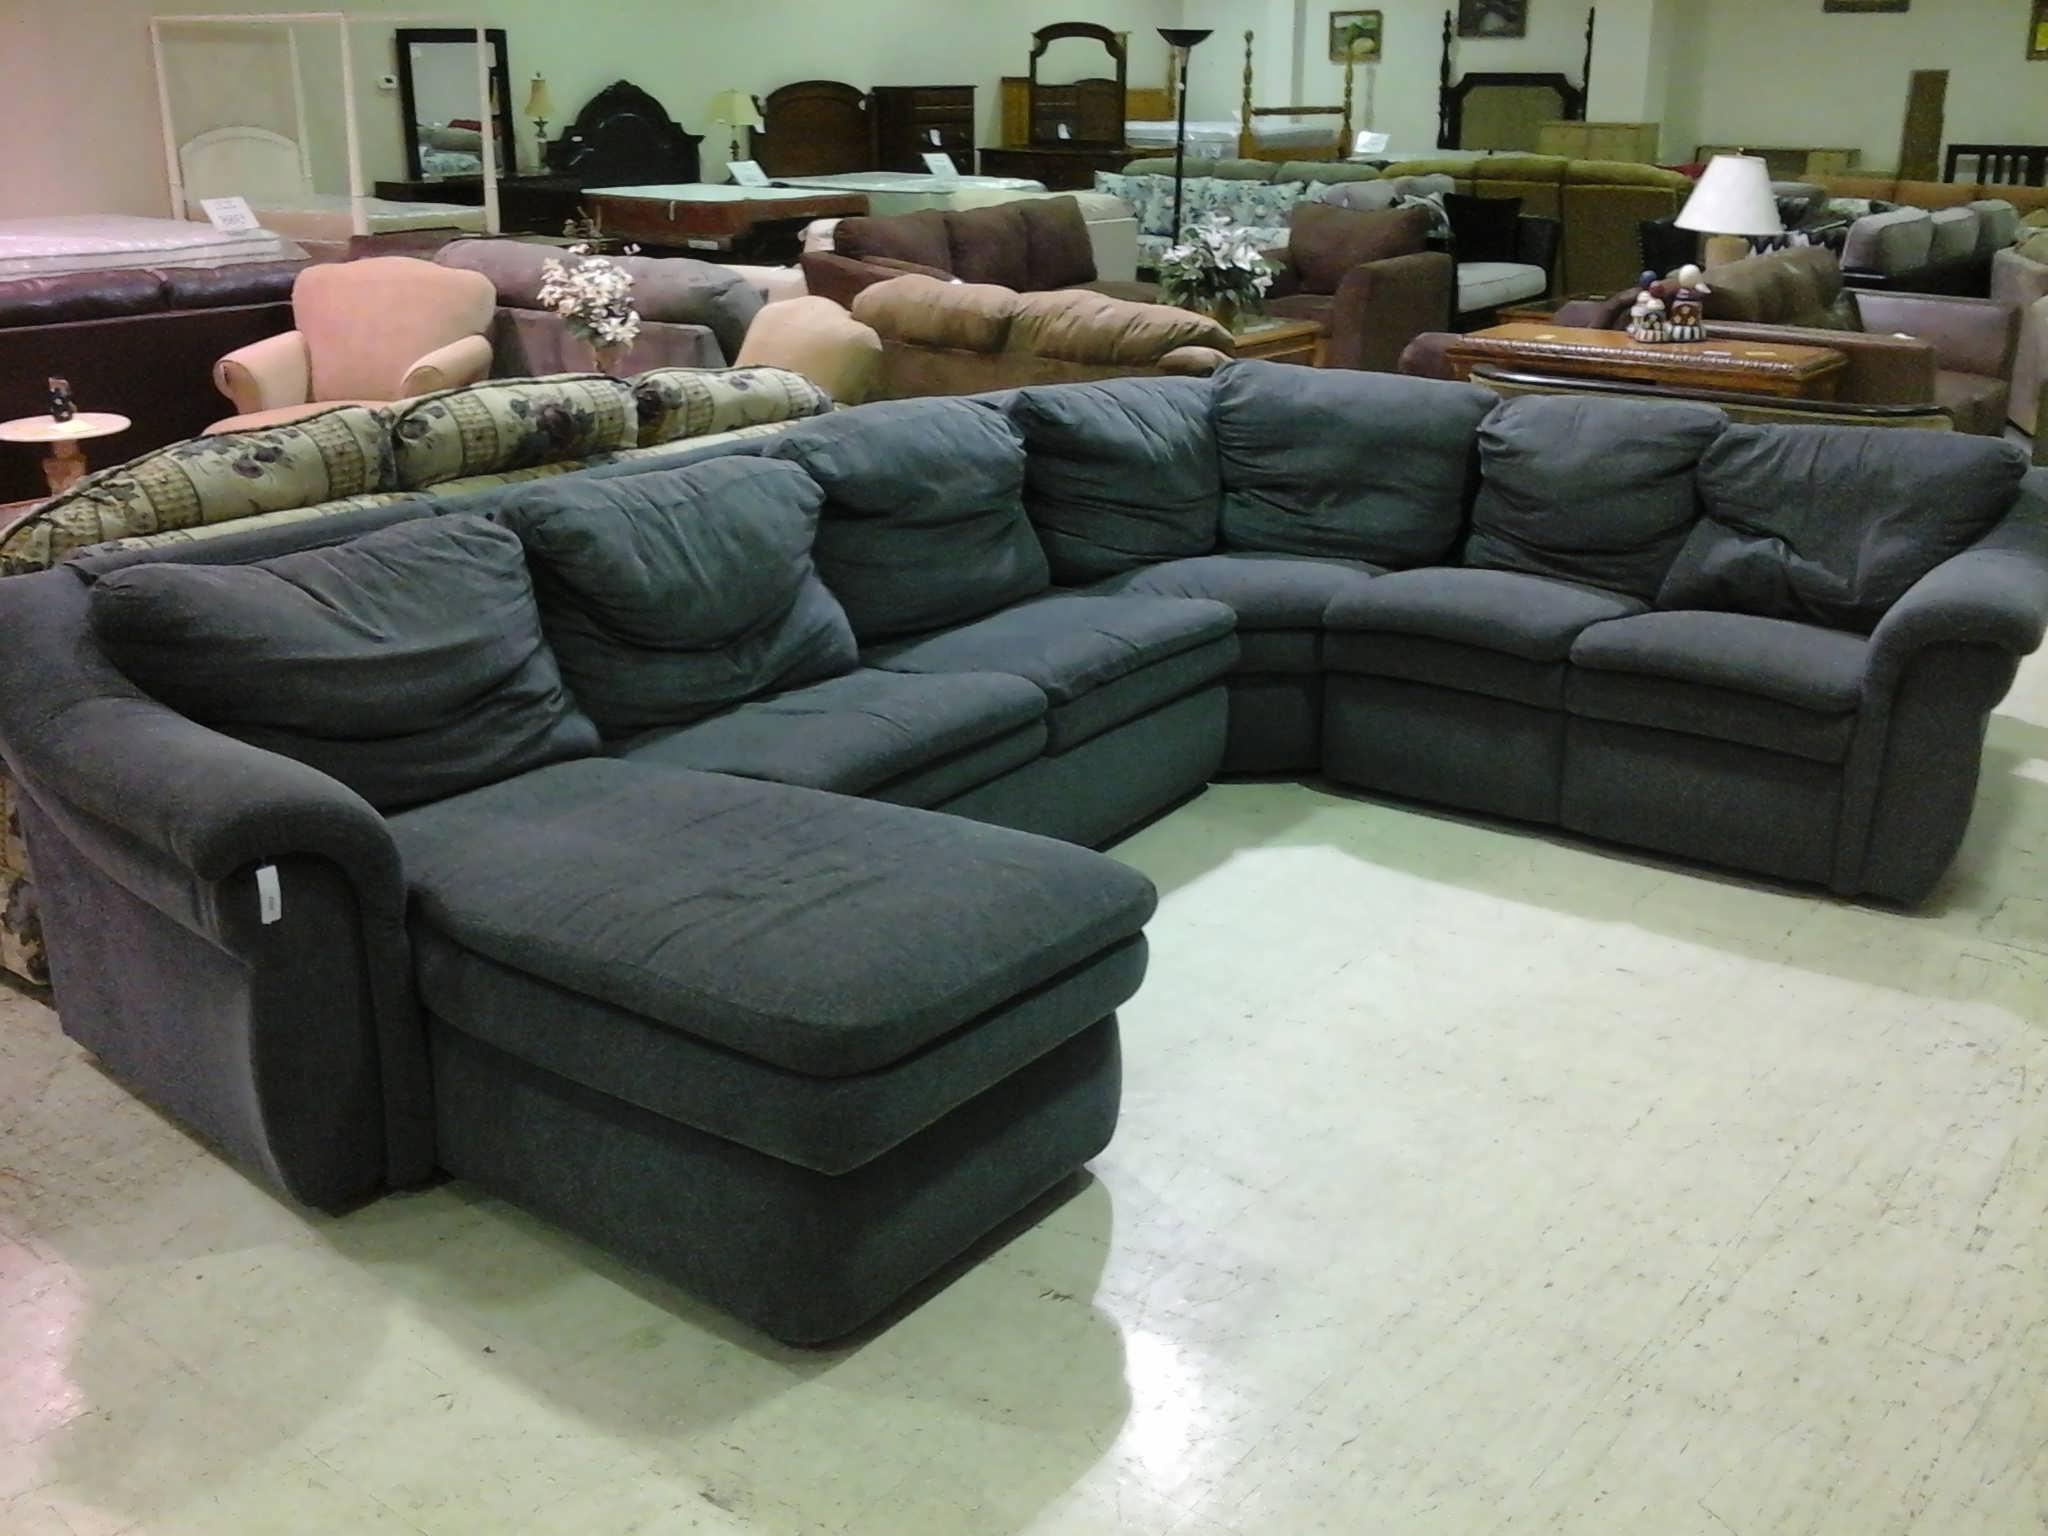 Sofa : Chaise Sofa Leather L Shaped Couch Black Sectional Couch In Well Known Sectional Couches With Chaise (View 10 of 15)